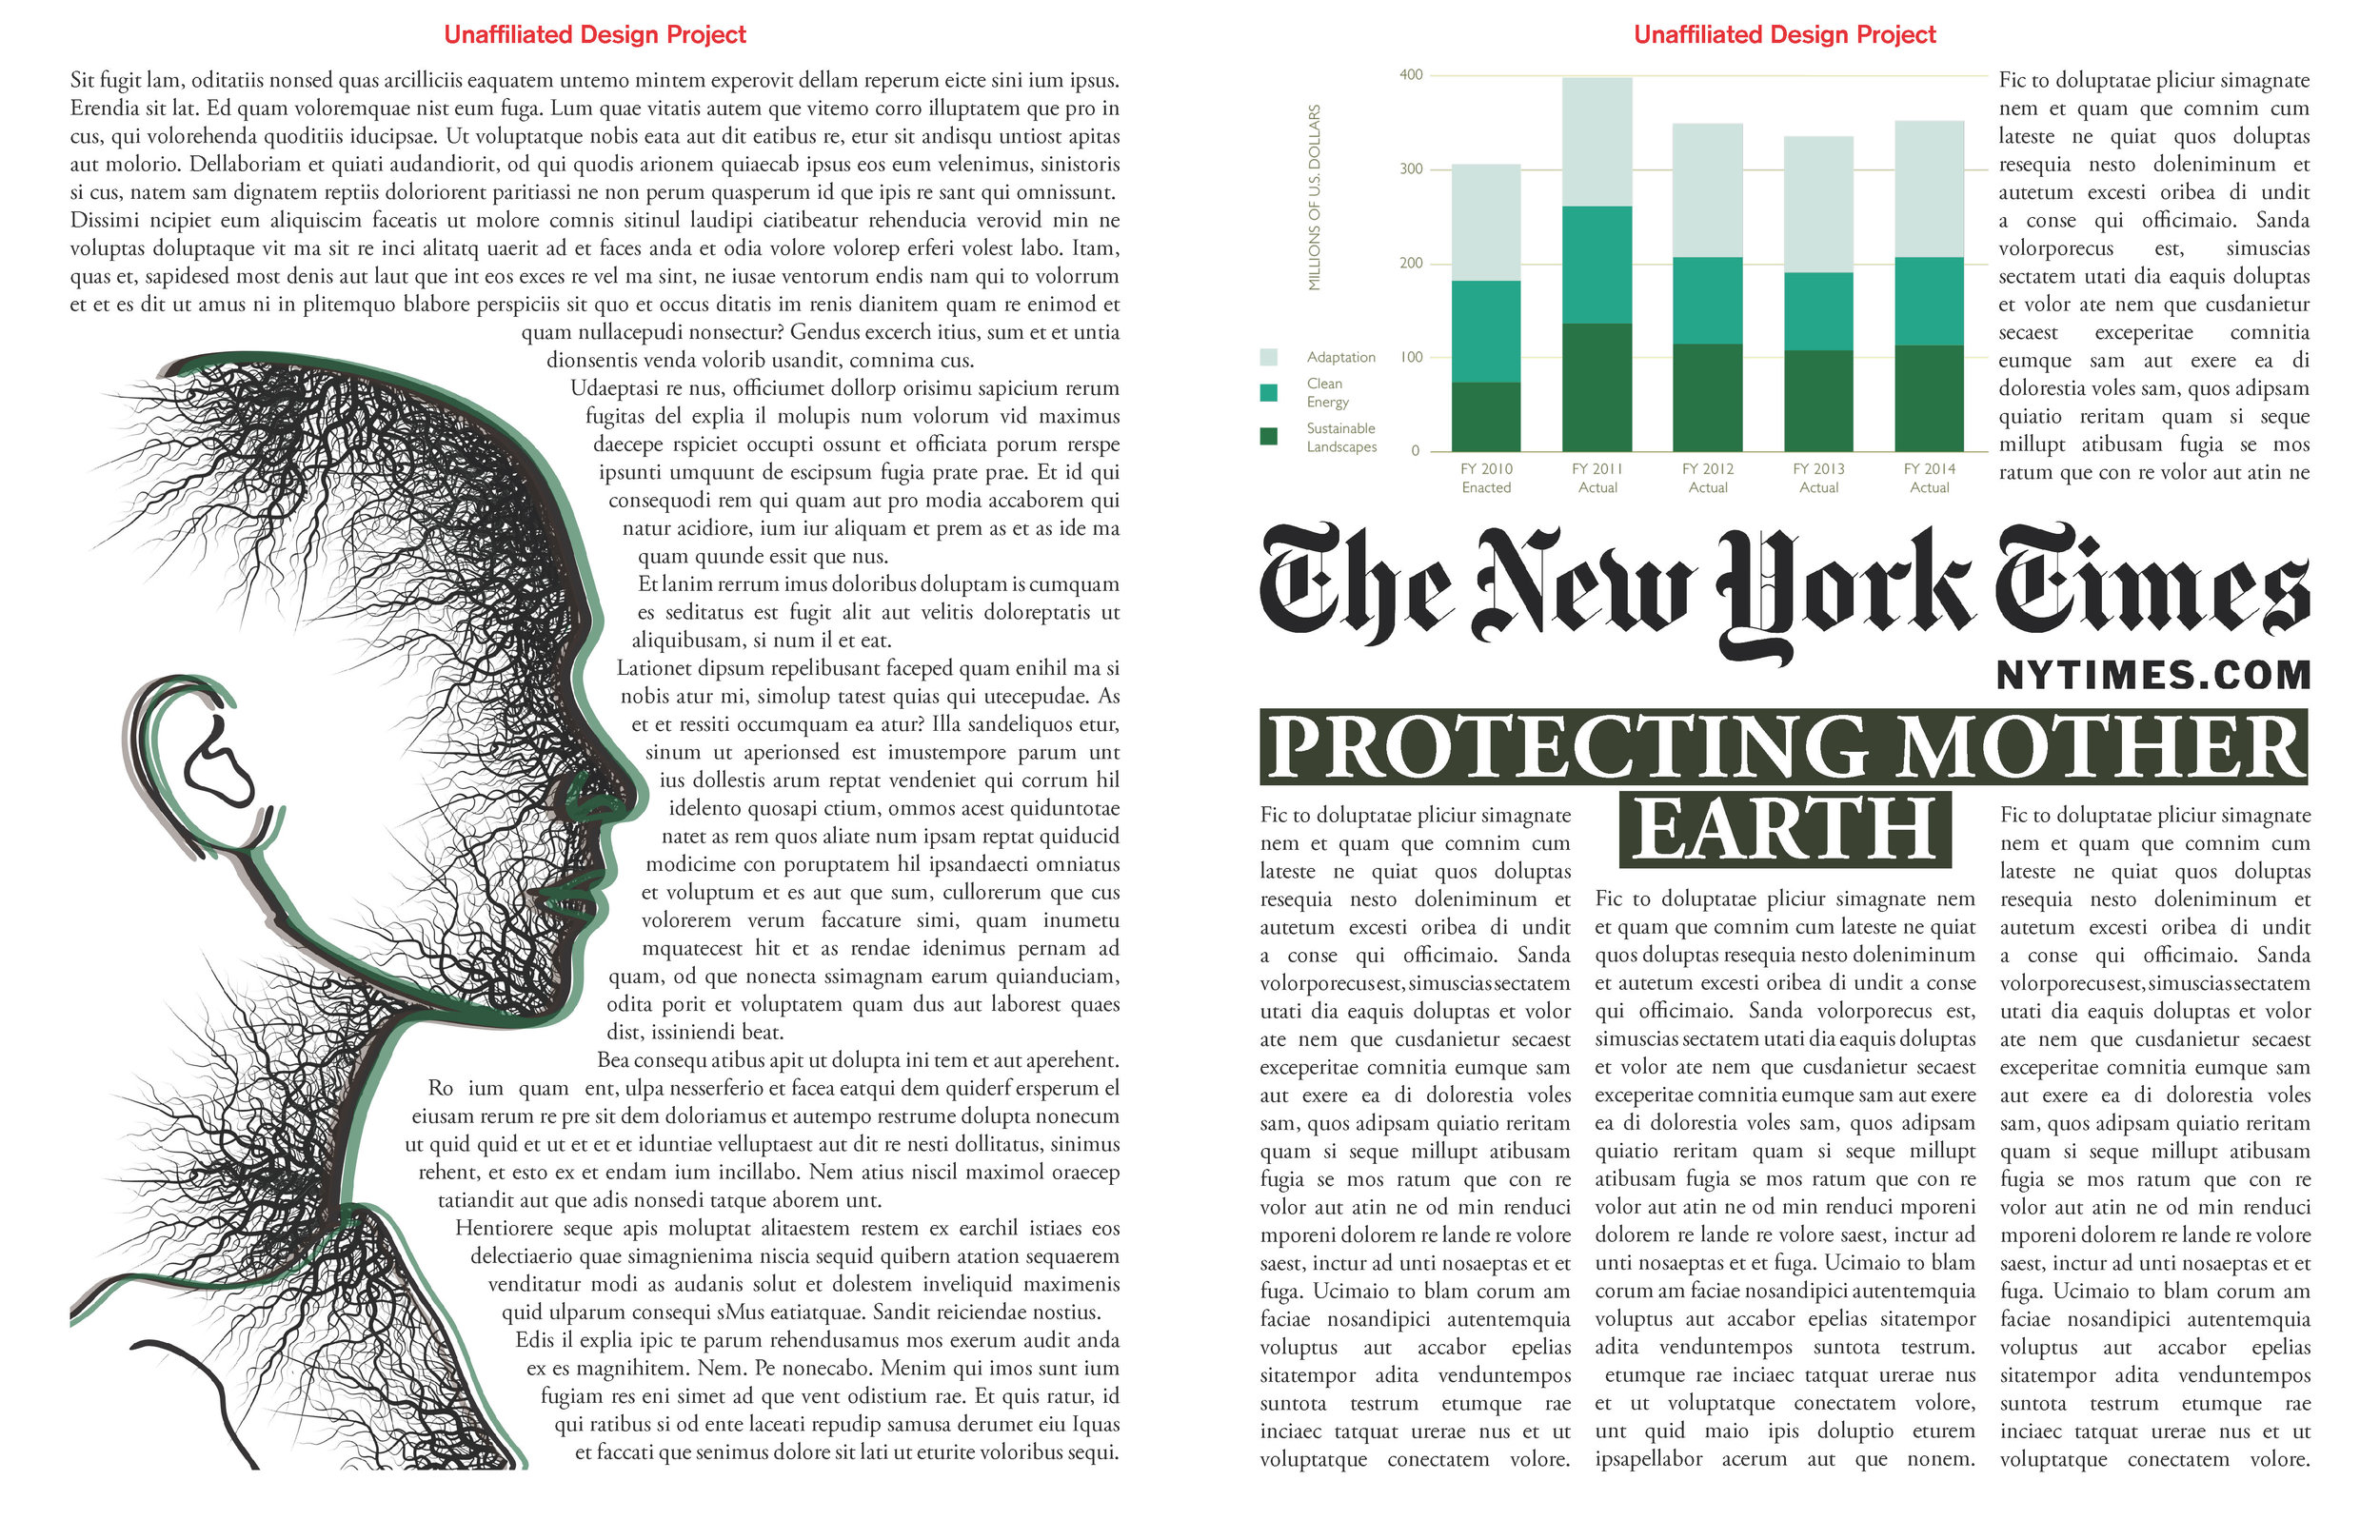 new york times_Page_3.jpg